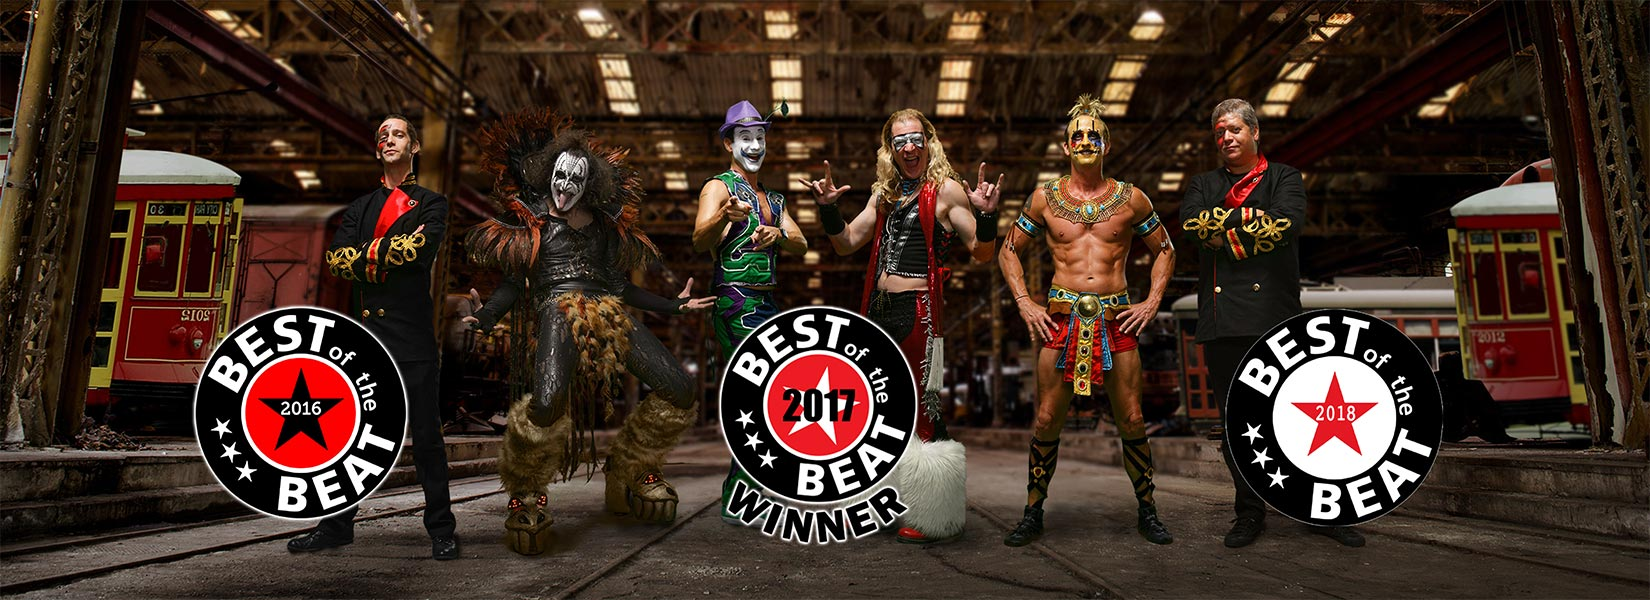 OffBEAT Magazine Best Cover Band: Bag Of Donuts